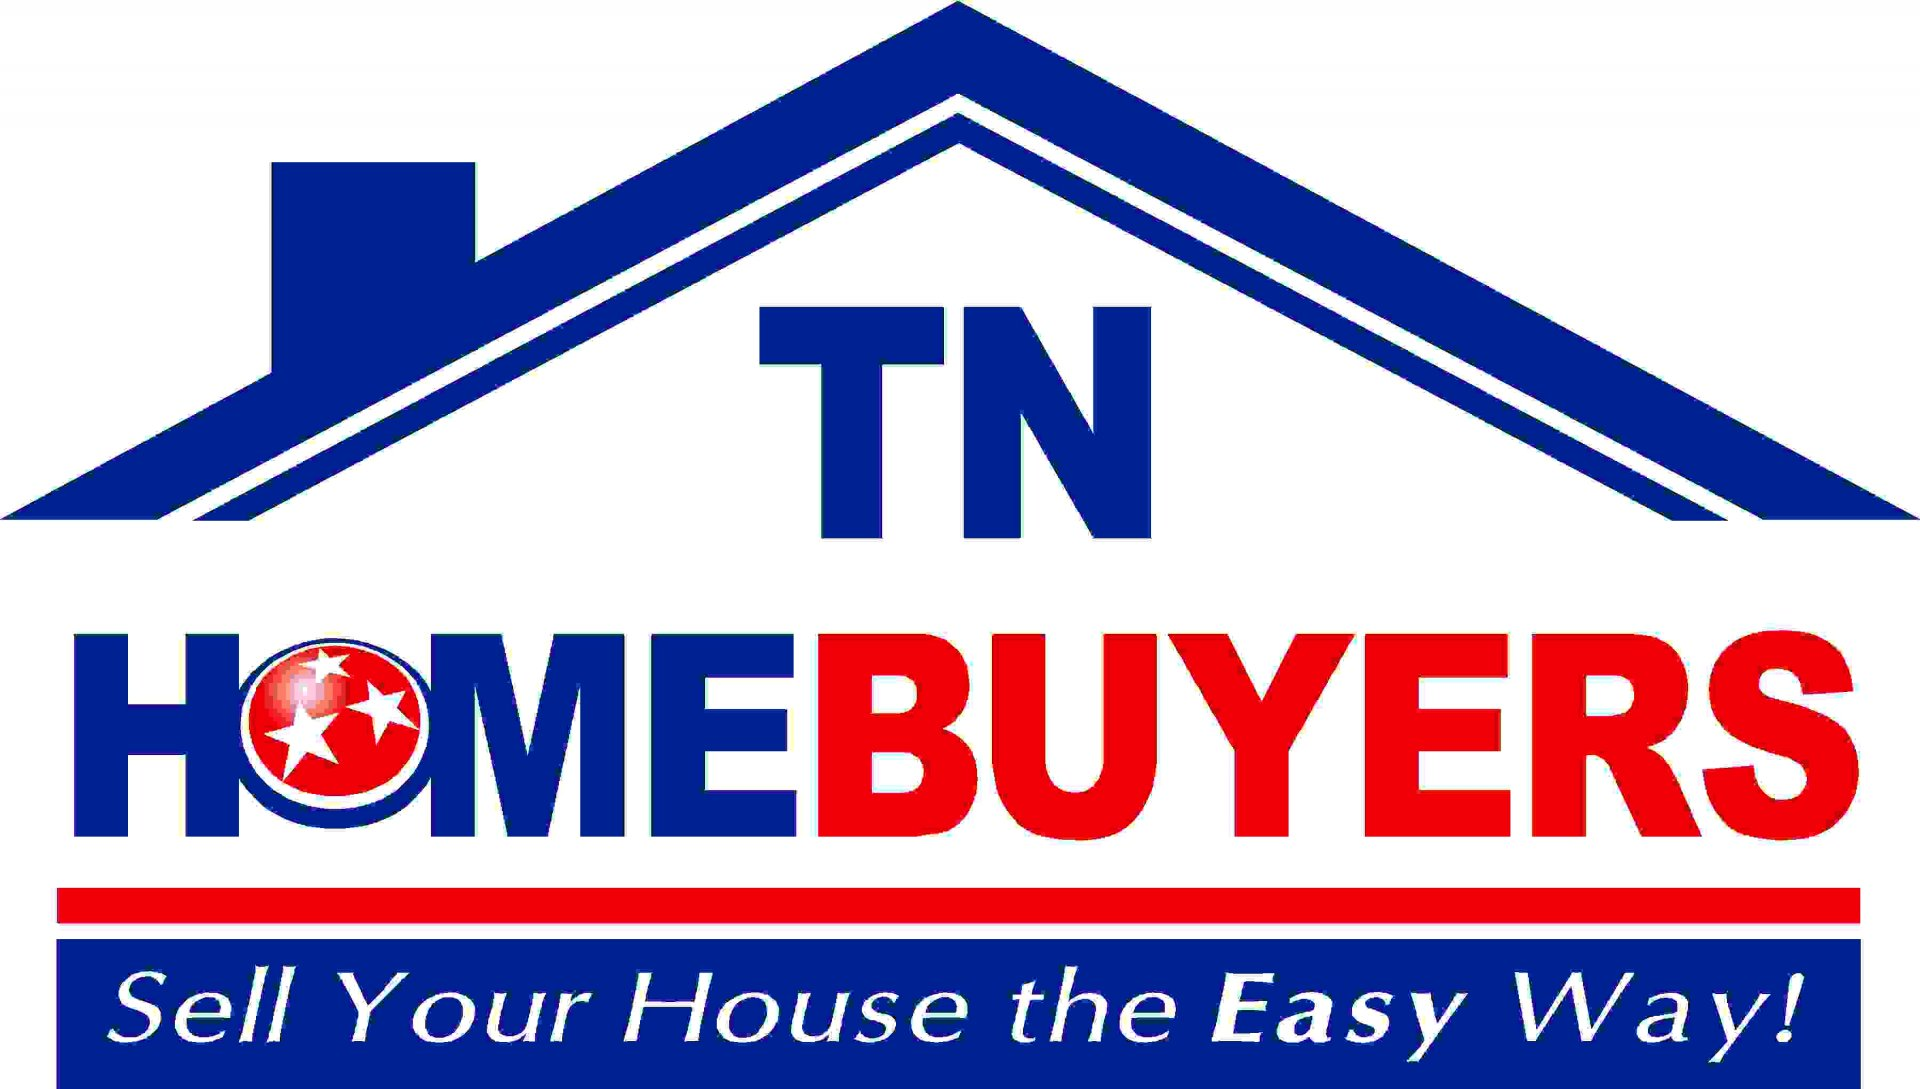 TN HomeBuyers logo